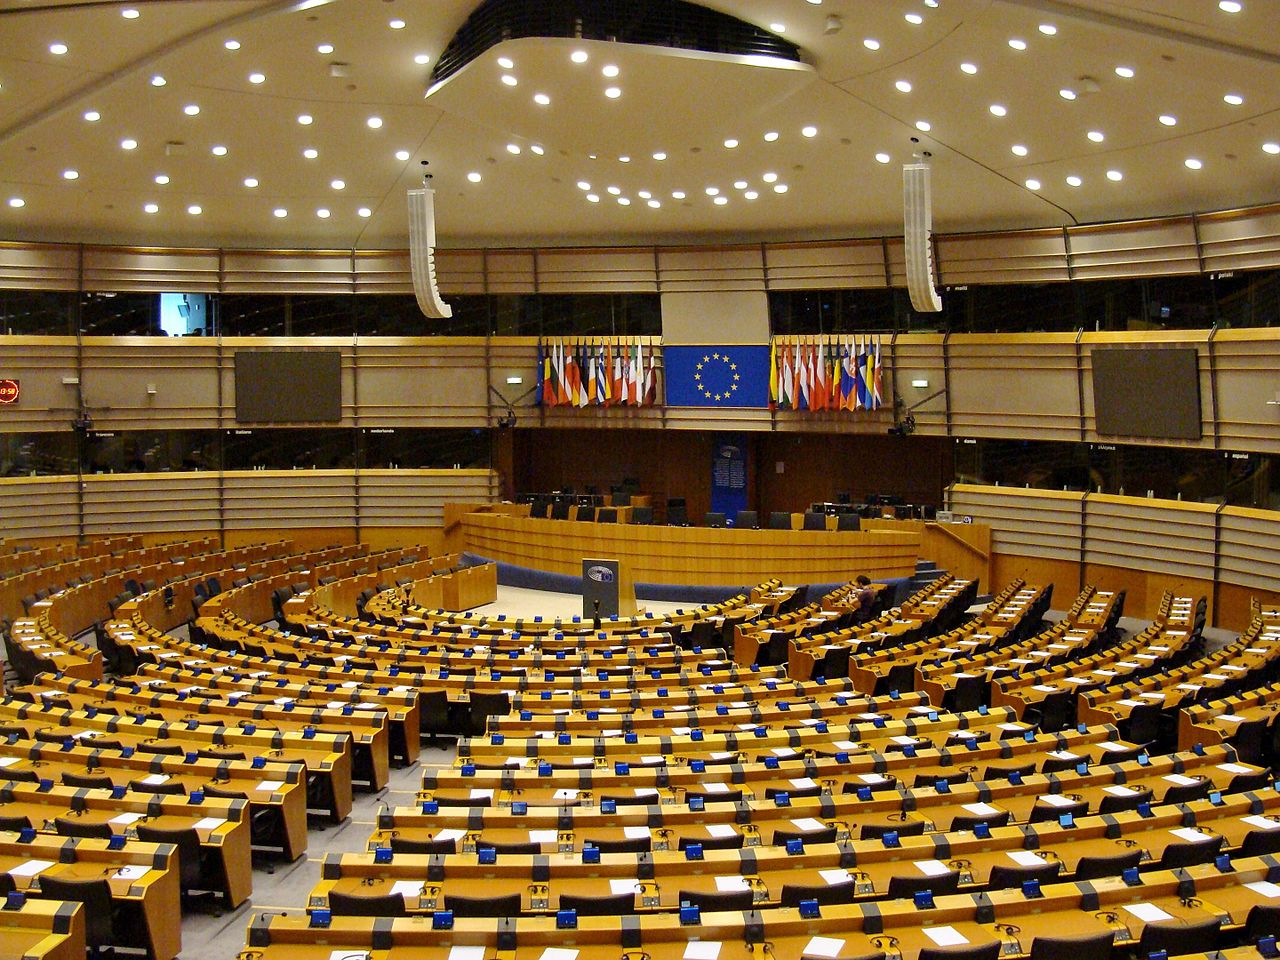 European Parlament Hemicycle Bryssels Belgium 2016 02